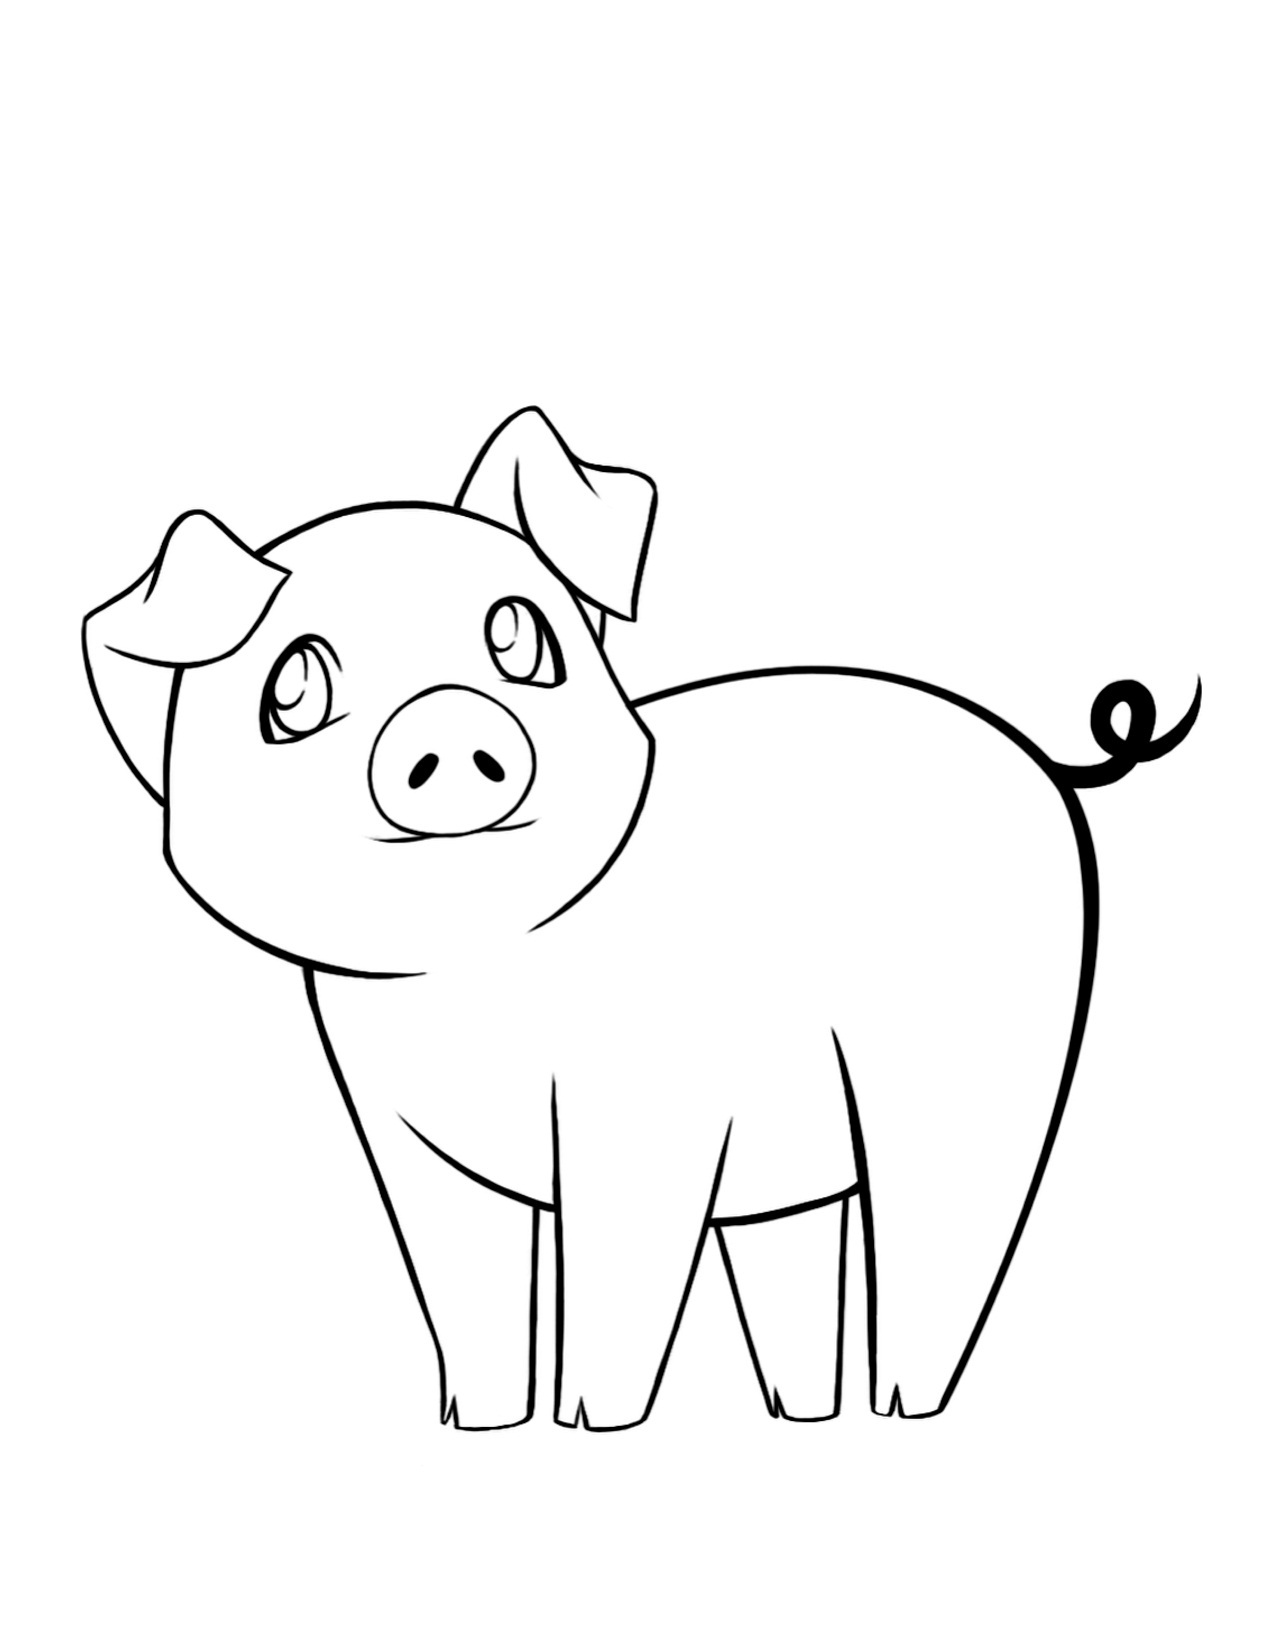 coloring pictures of pigs pig coloring pages getcoloringpagescom of pictures coloring pigs